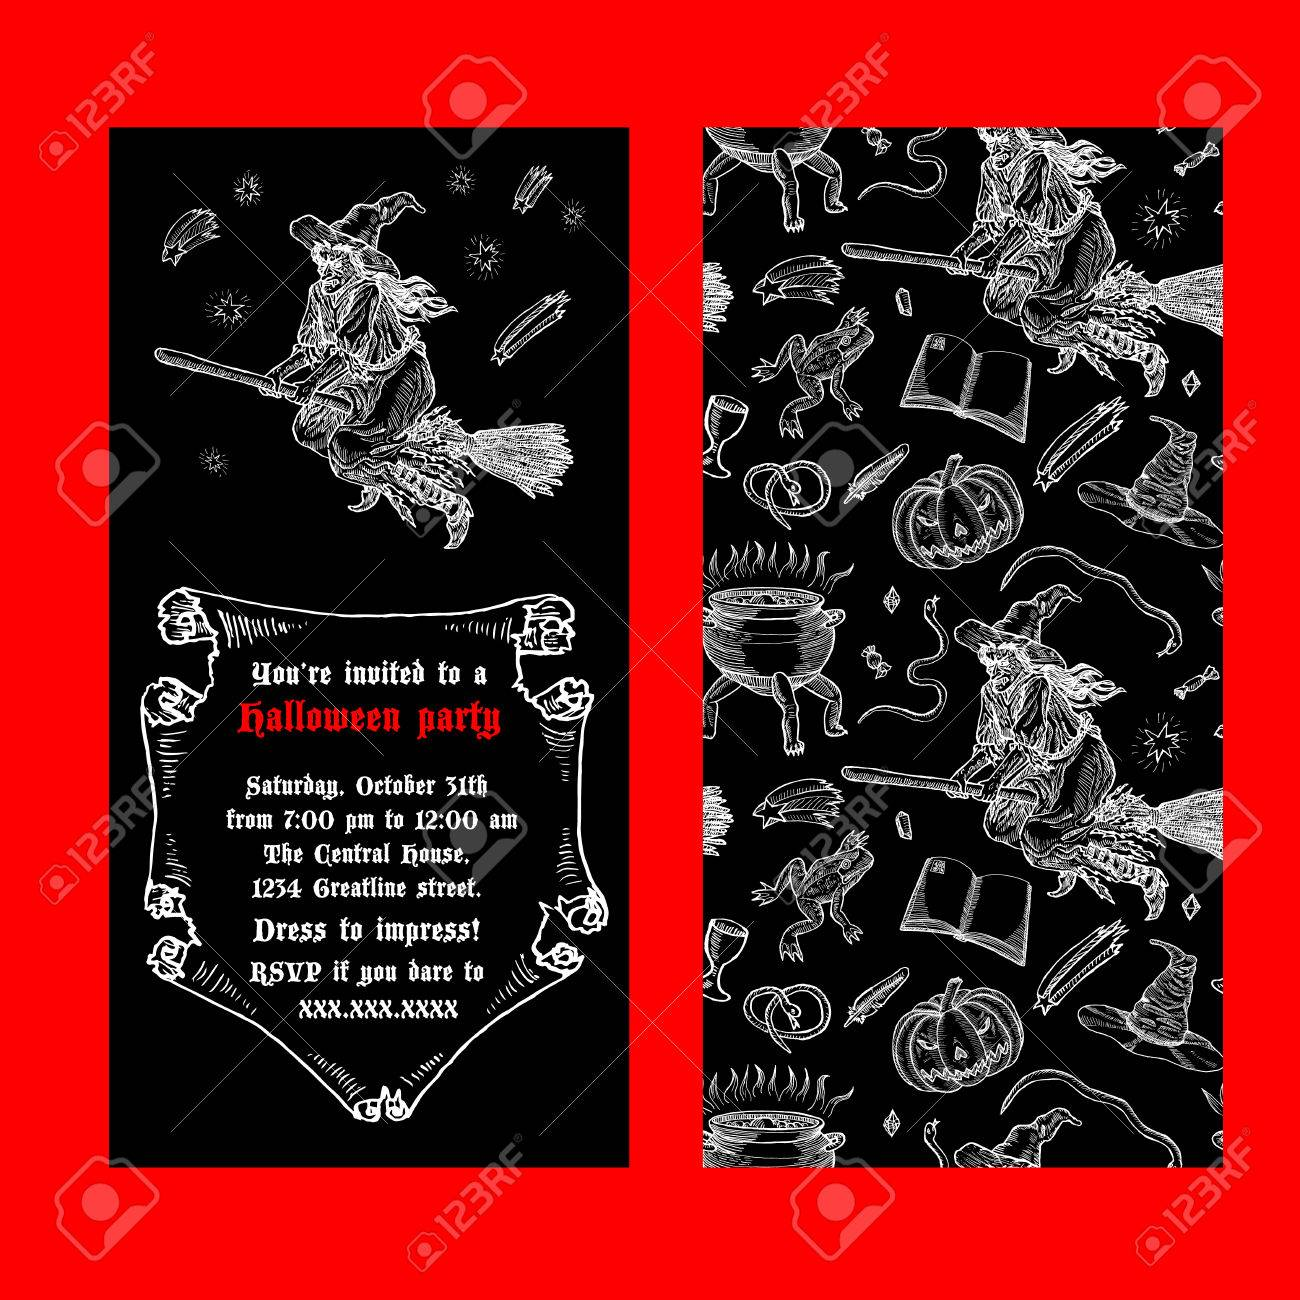 Medieval engraving style halloween invitation ink line illustration medieval engraving style halloween invitation ink line illustration with animals objects and characters for stopboris Image collections